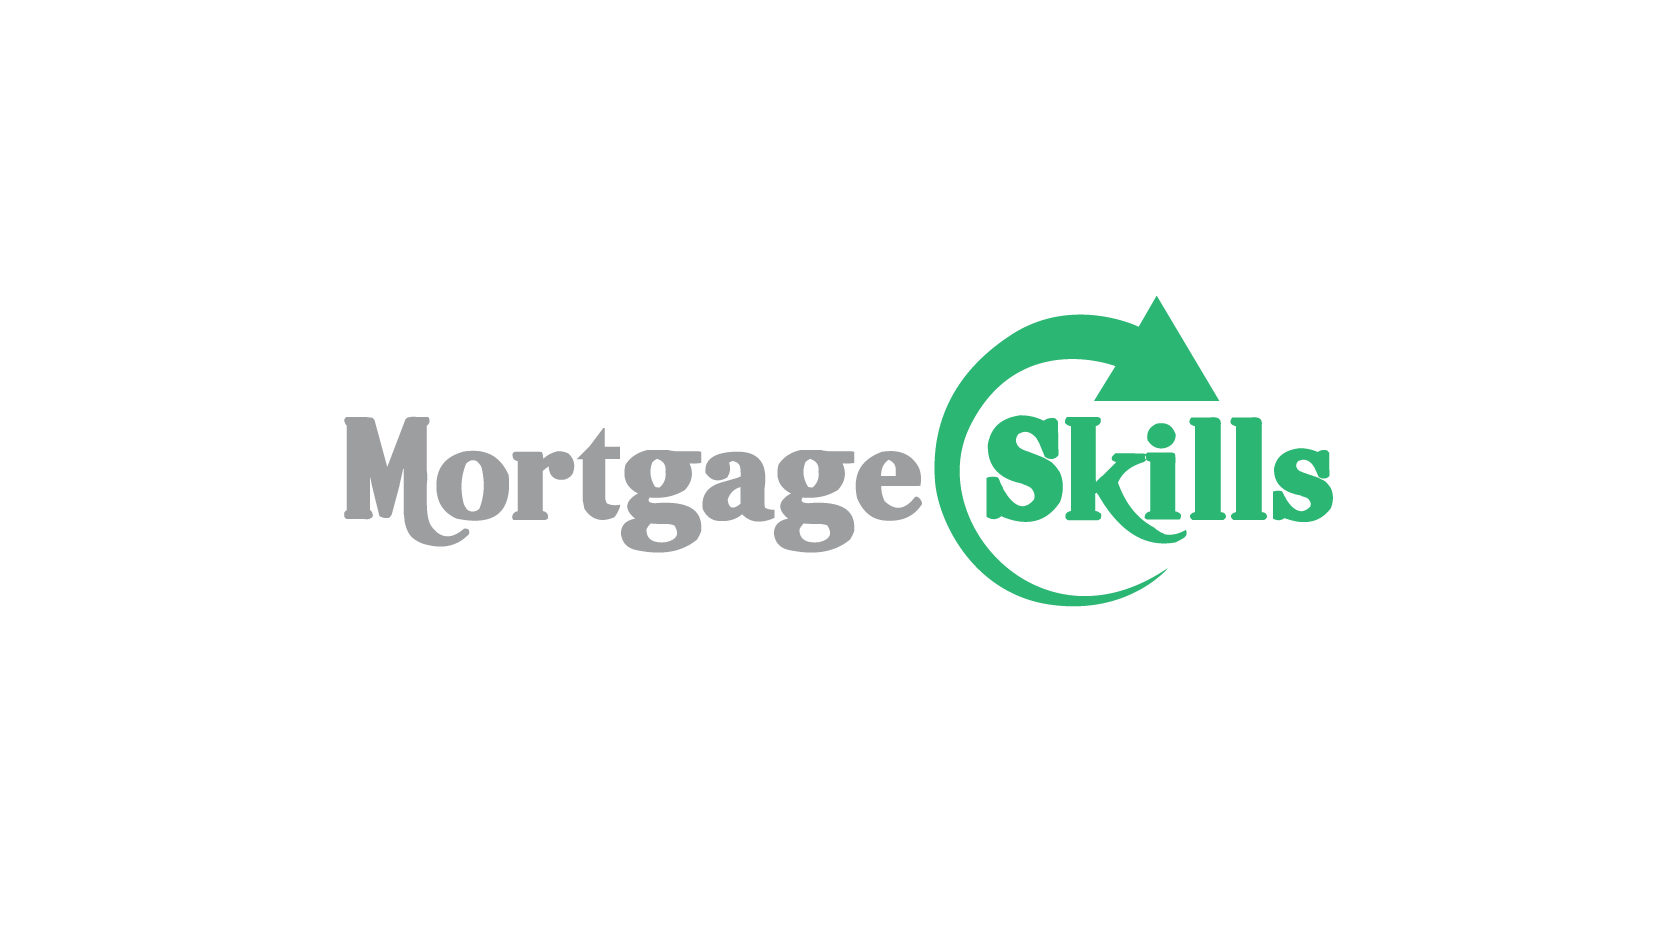 MortgageSkills.com